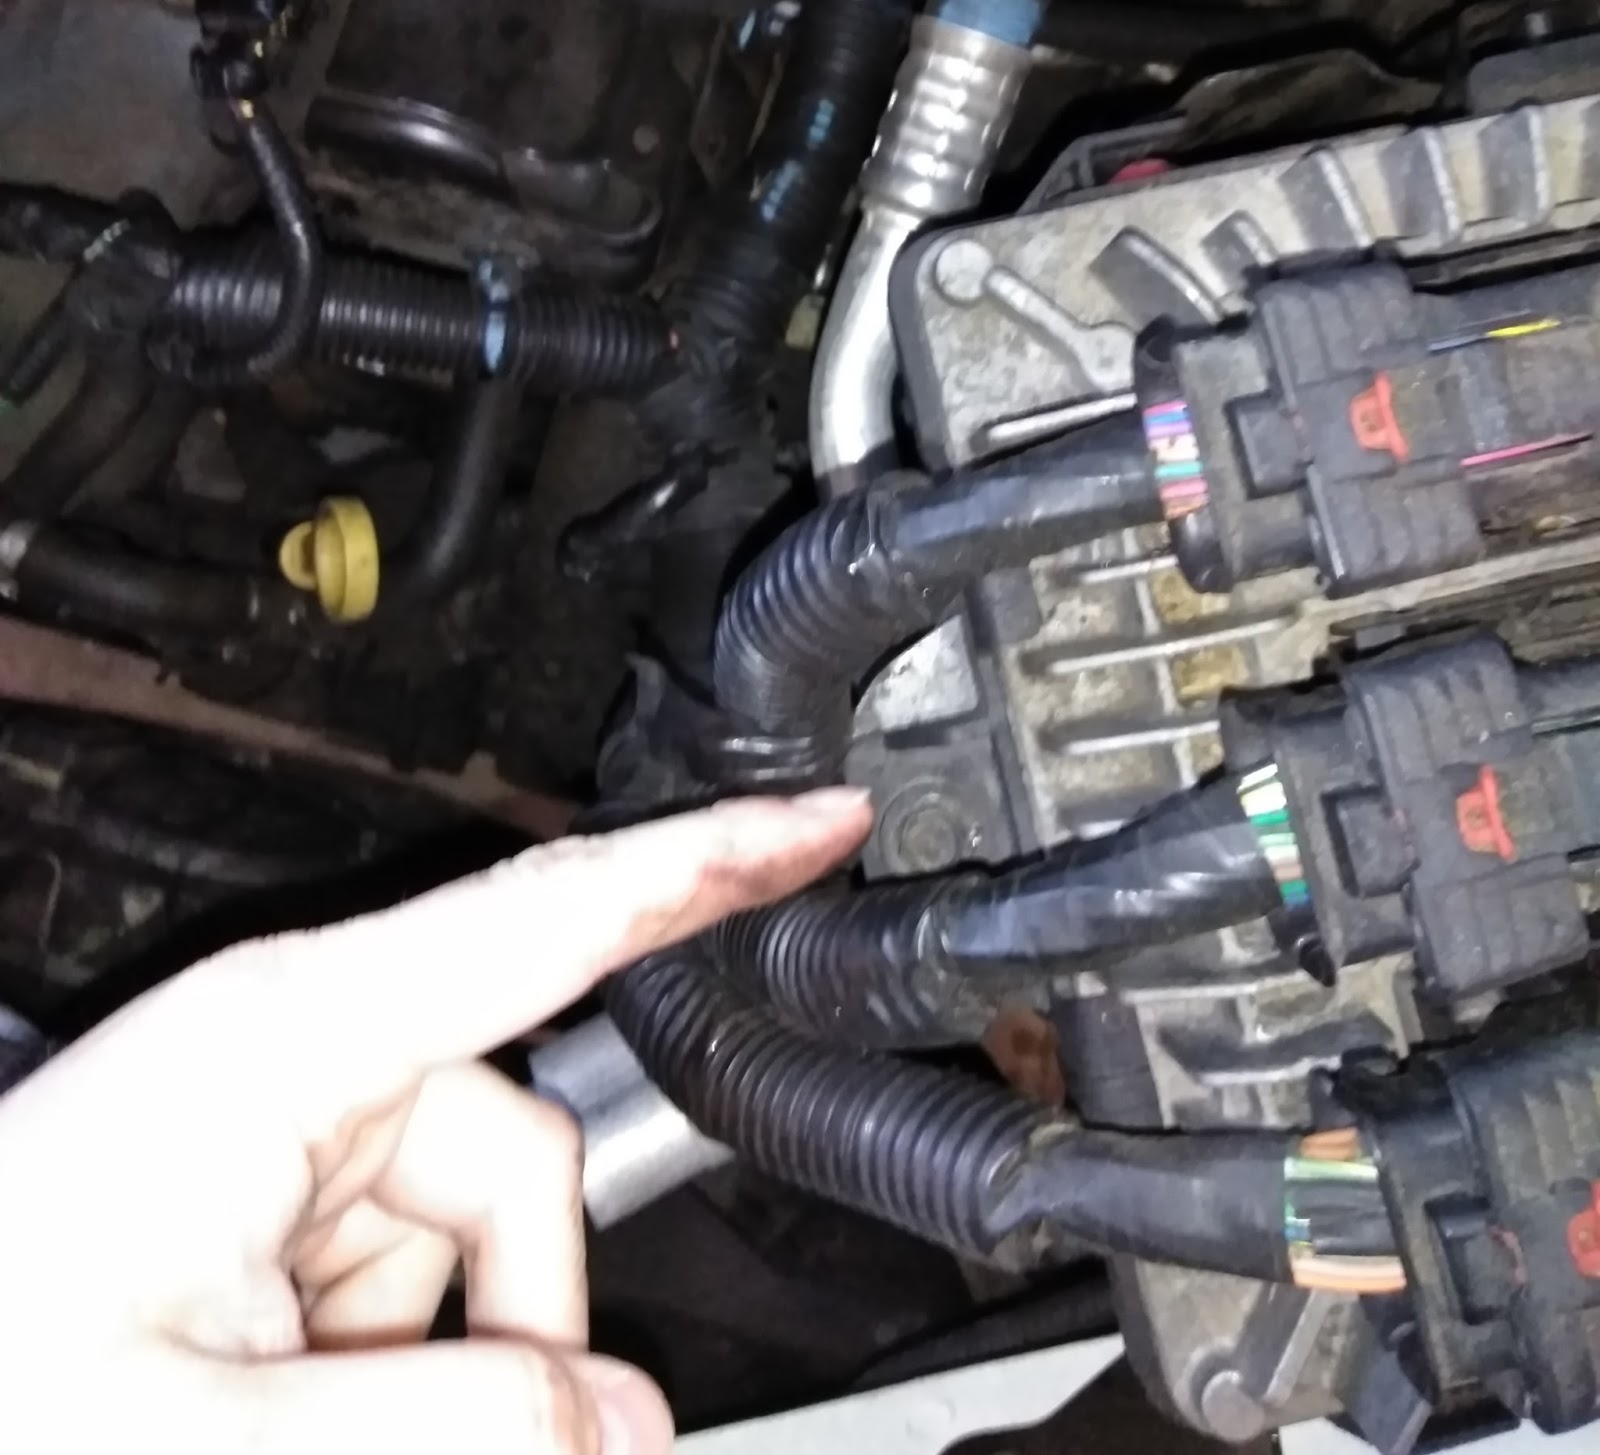 Changing the battery on a 2011 Chevy Equinox - Extra Parts